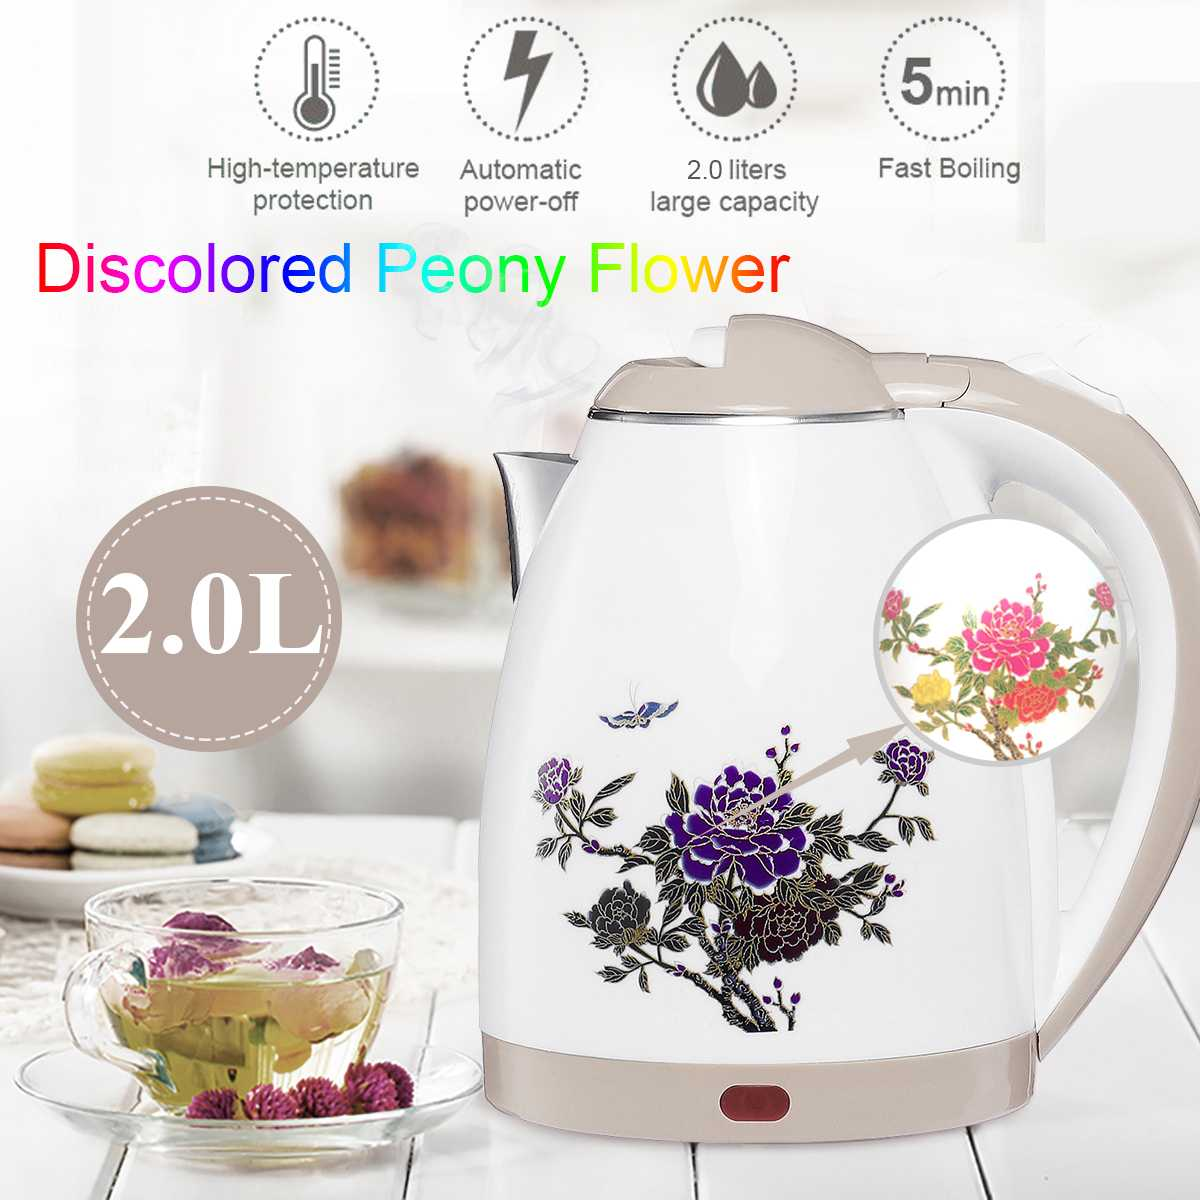 2L Double-layer Stainless Steel 220V 1800W Power 360 Degree Rotational Base Overheating Power Off Electric Water Kettles